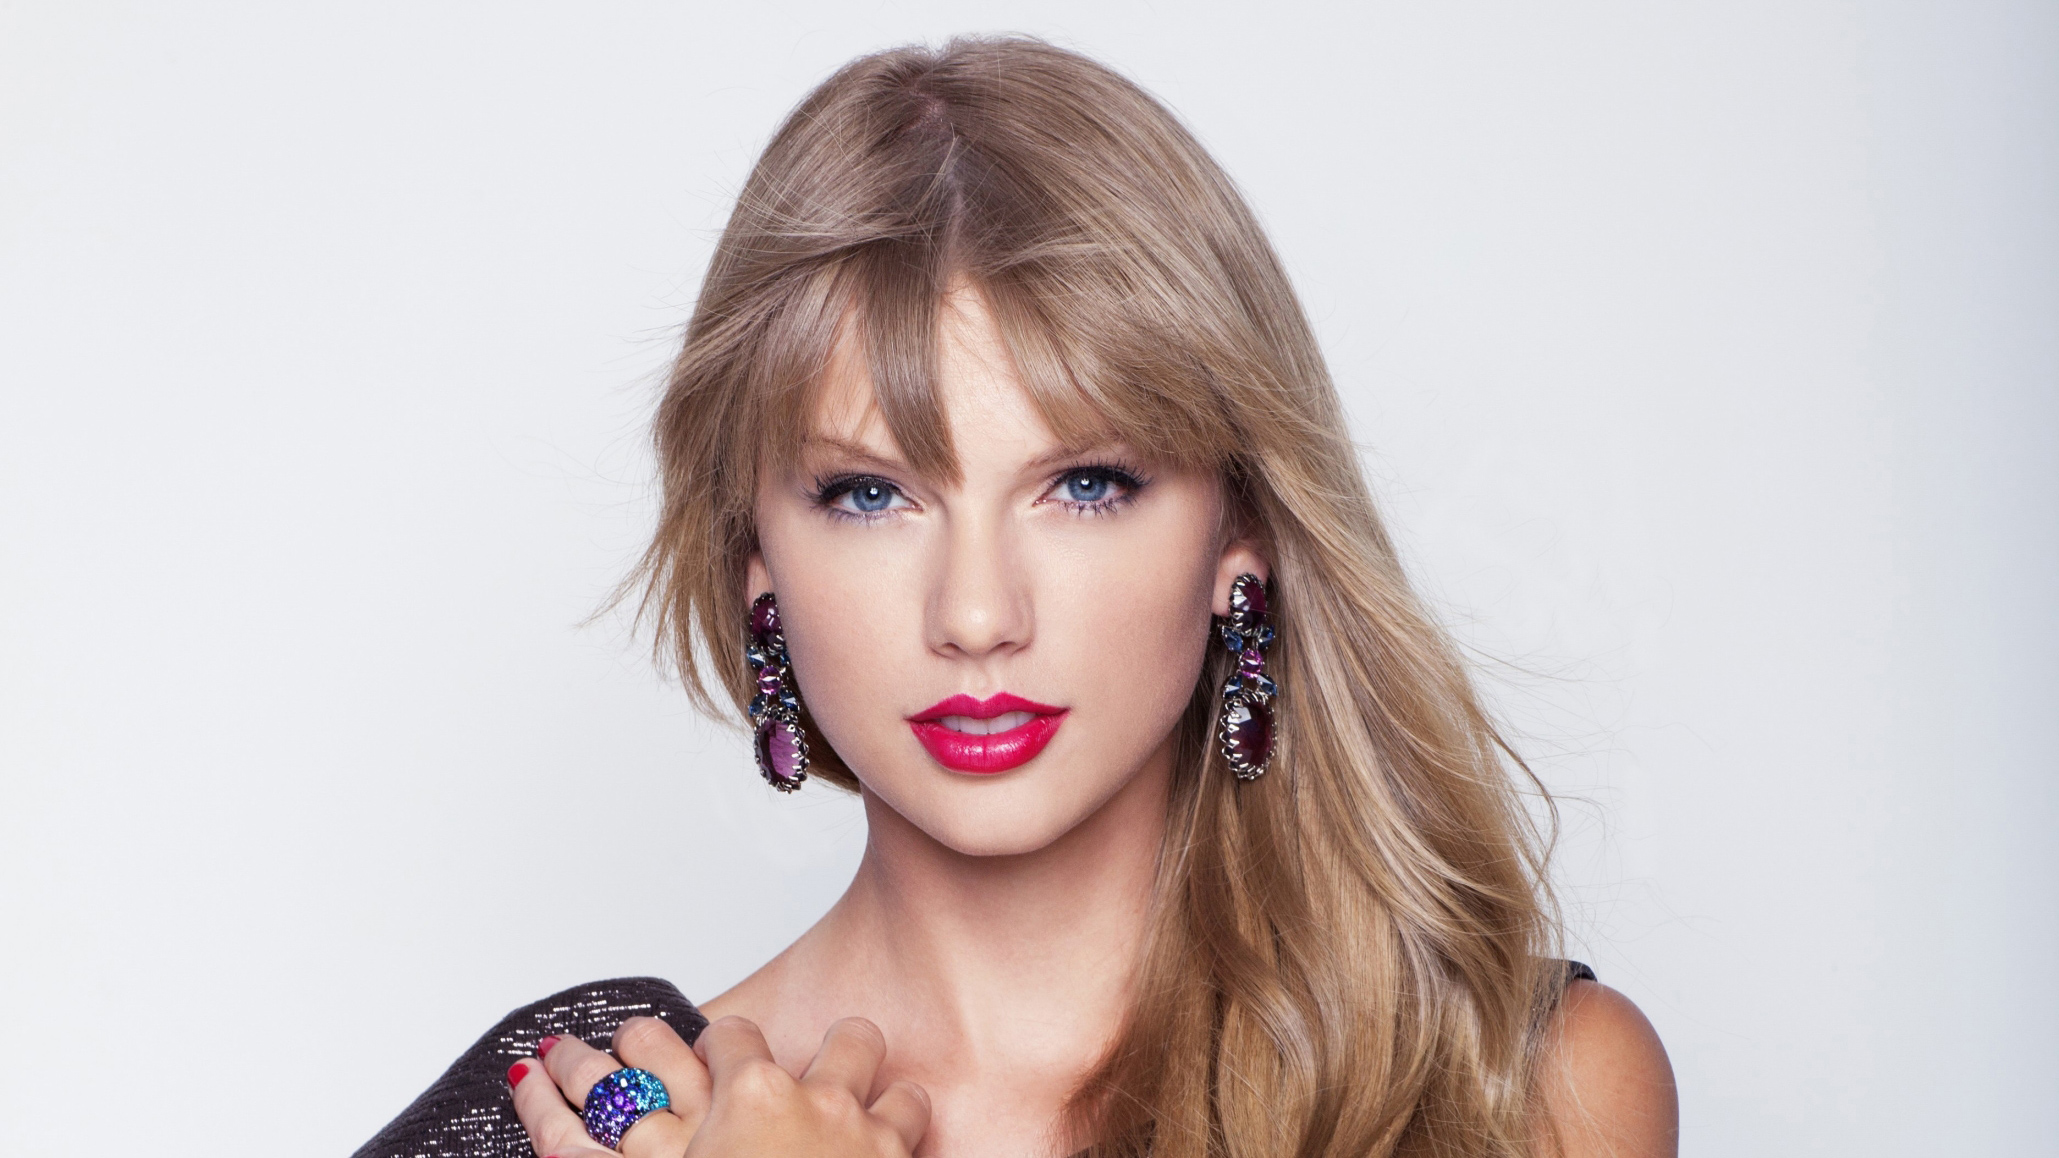 Taylor Swift 2019 Hd Celebrities 4k Wallpapers Images Backgrounds Photos And Pictures